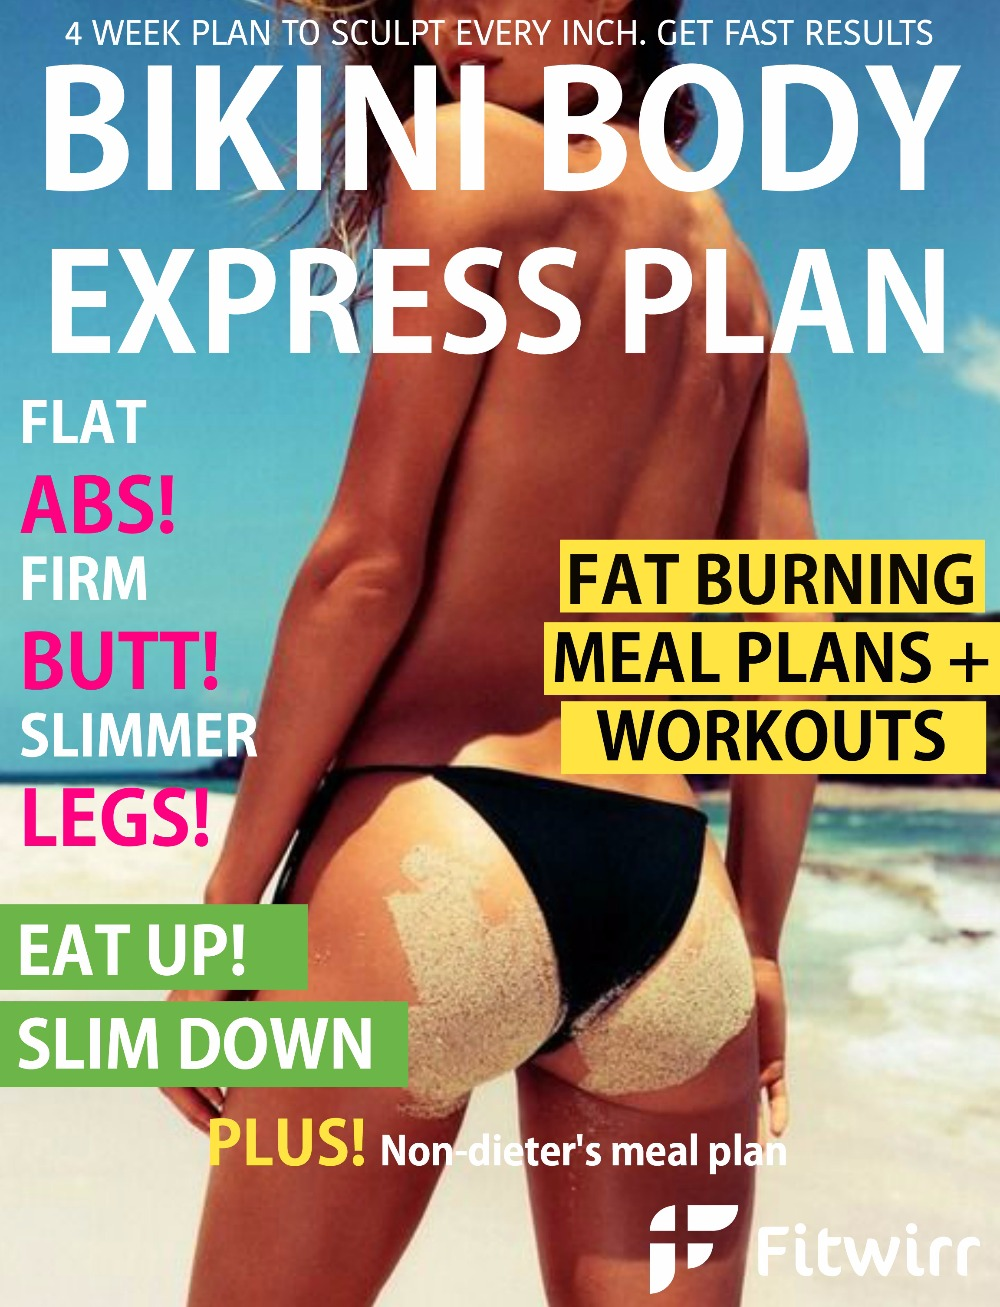 Bikini Body the Express Plan - Flat Abs, Firm Butt & Slim Legs